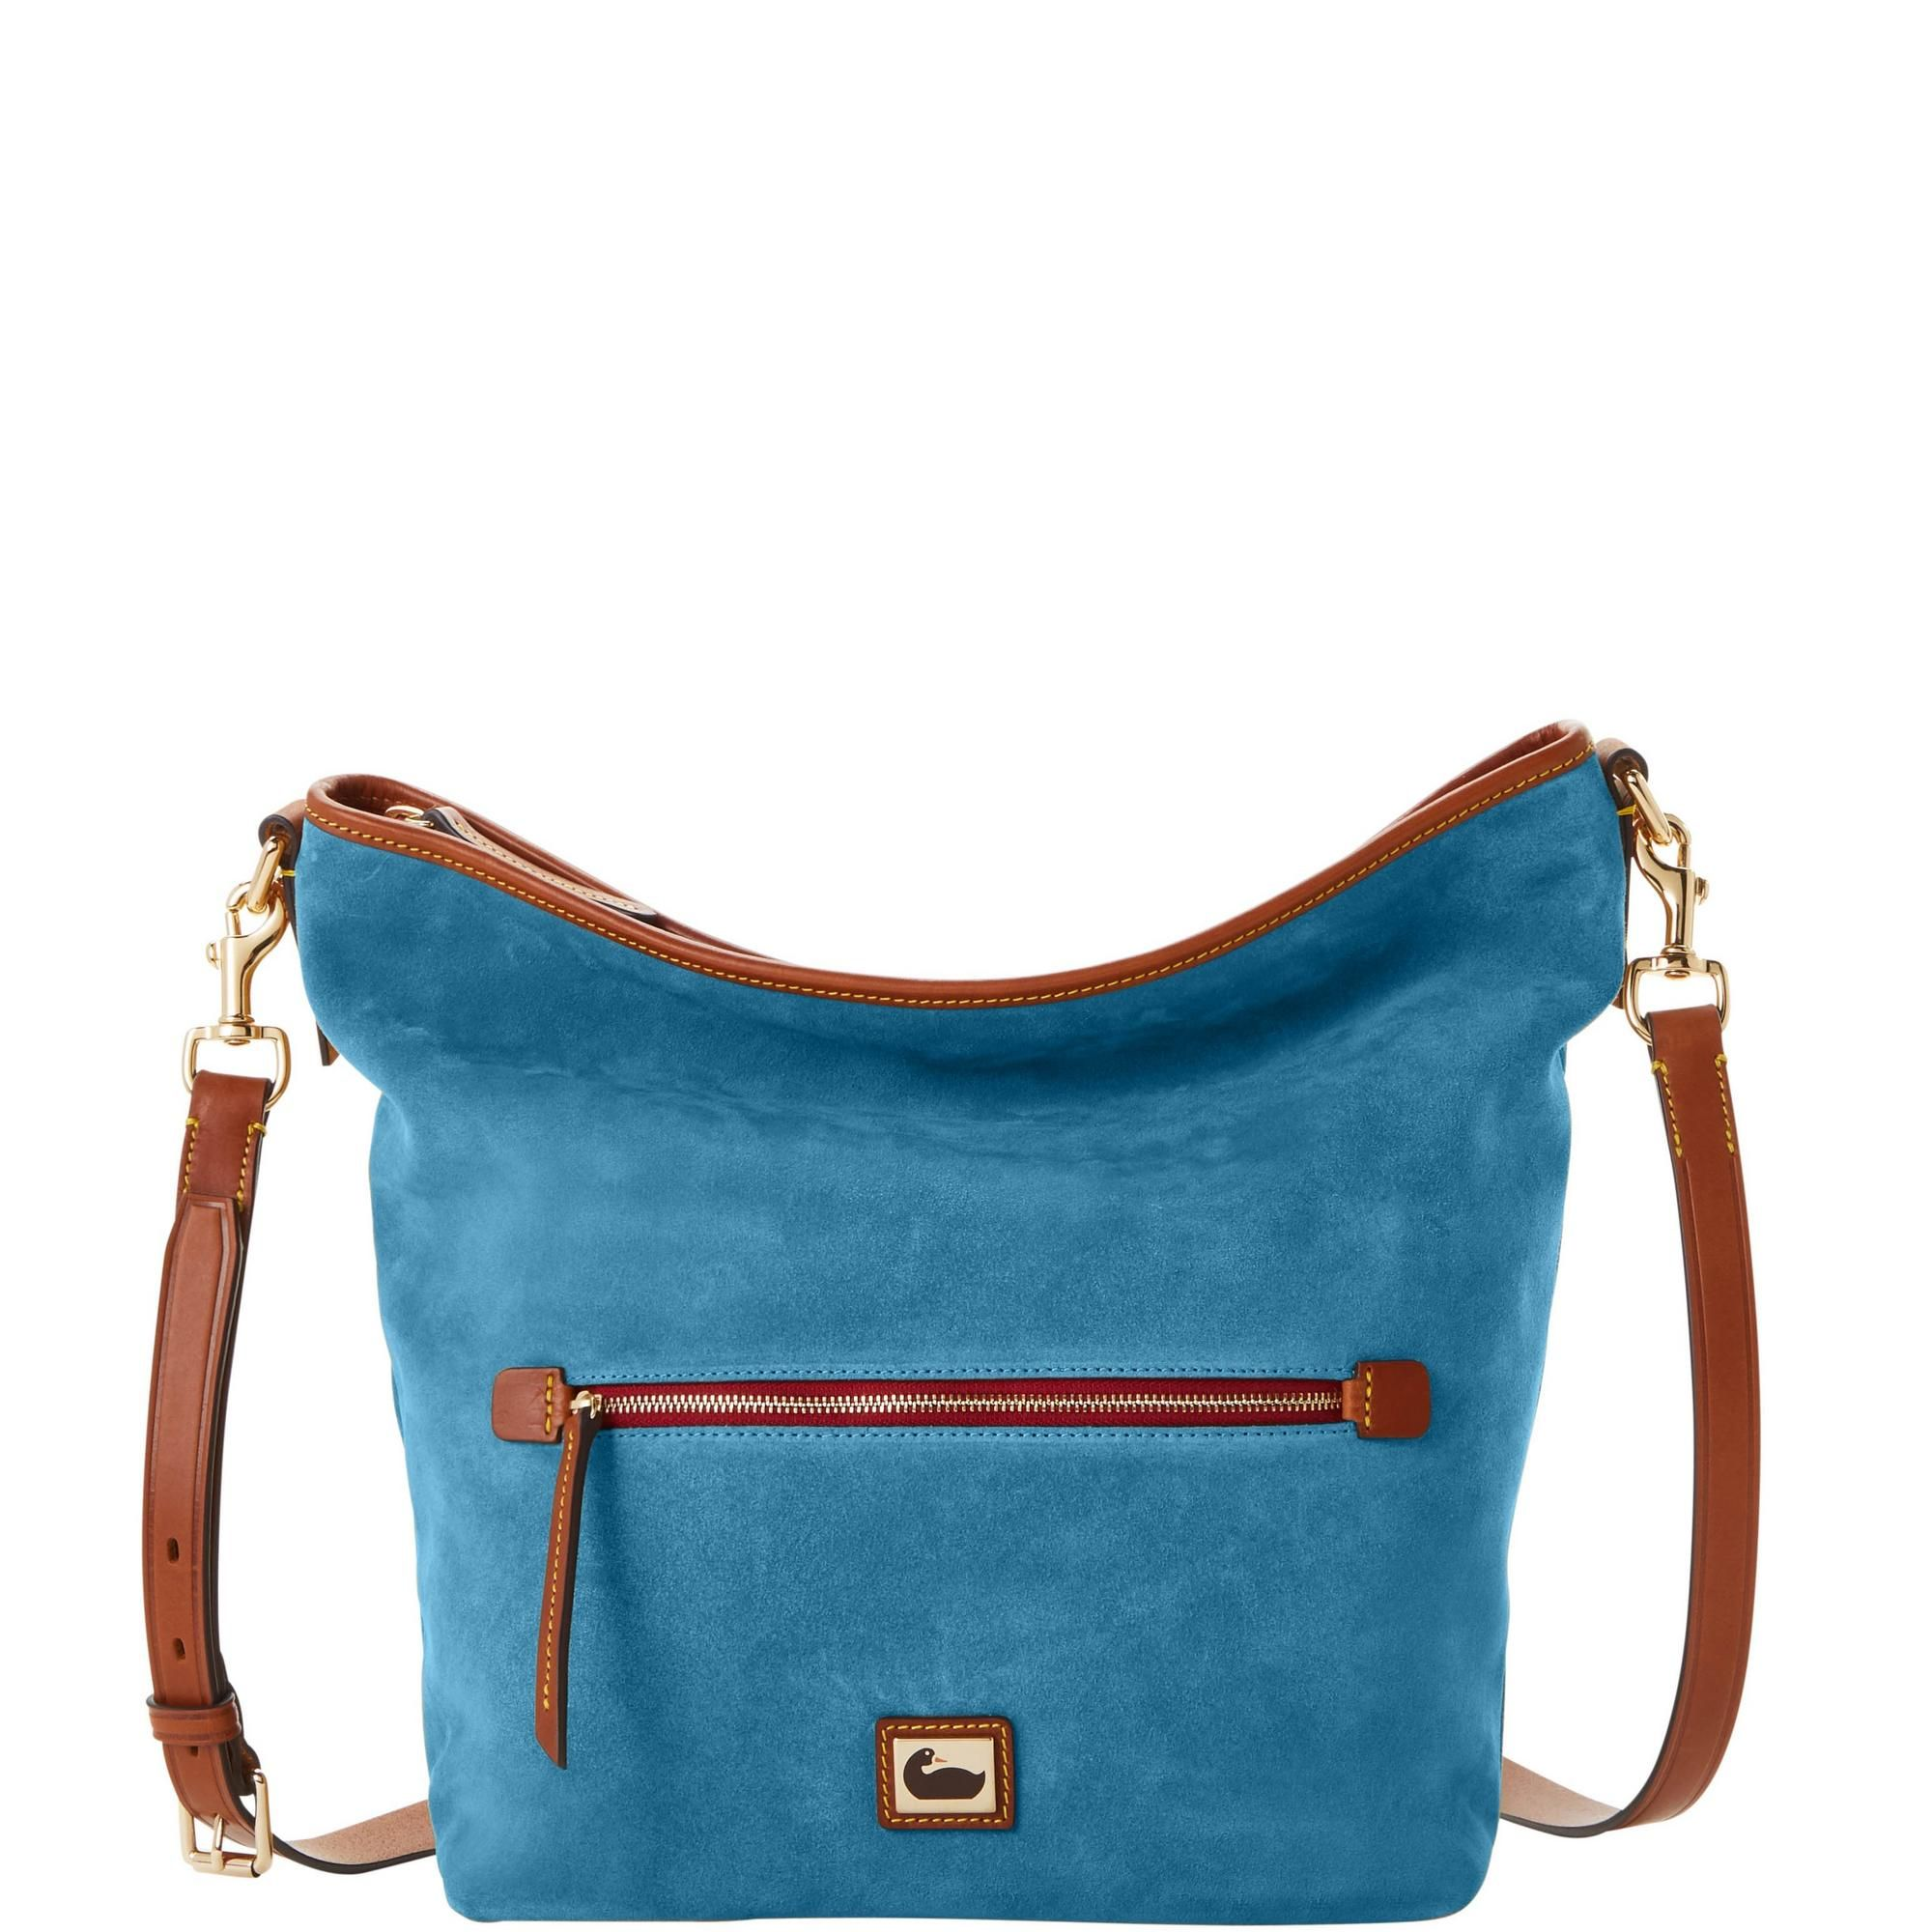 Dooney Bourke Camden Suede Hobo Crossbody Crossbody Shoulder Bag Suede Bags Dooney